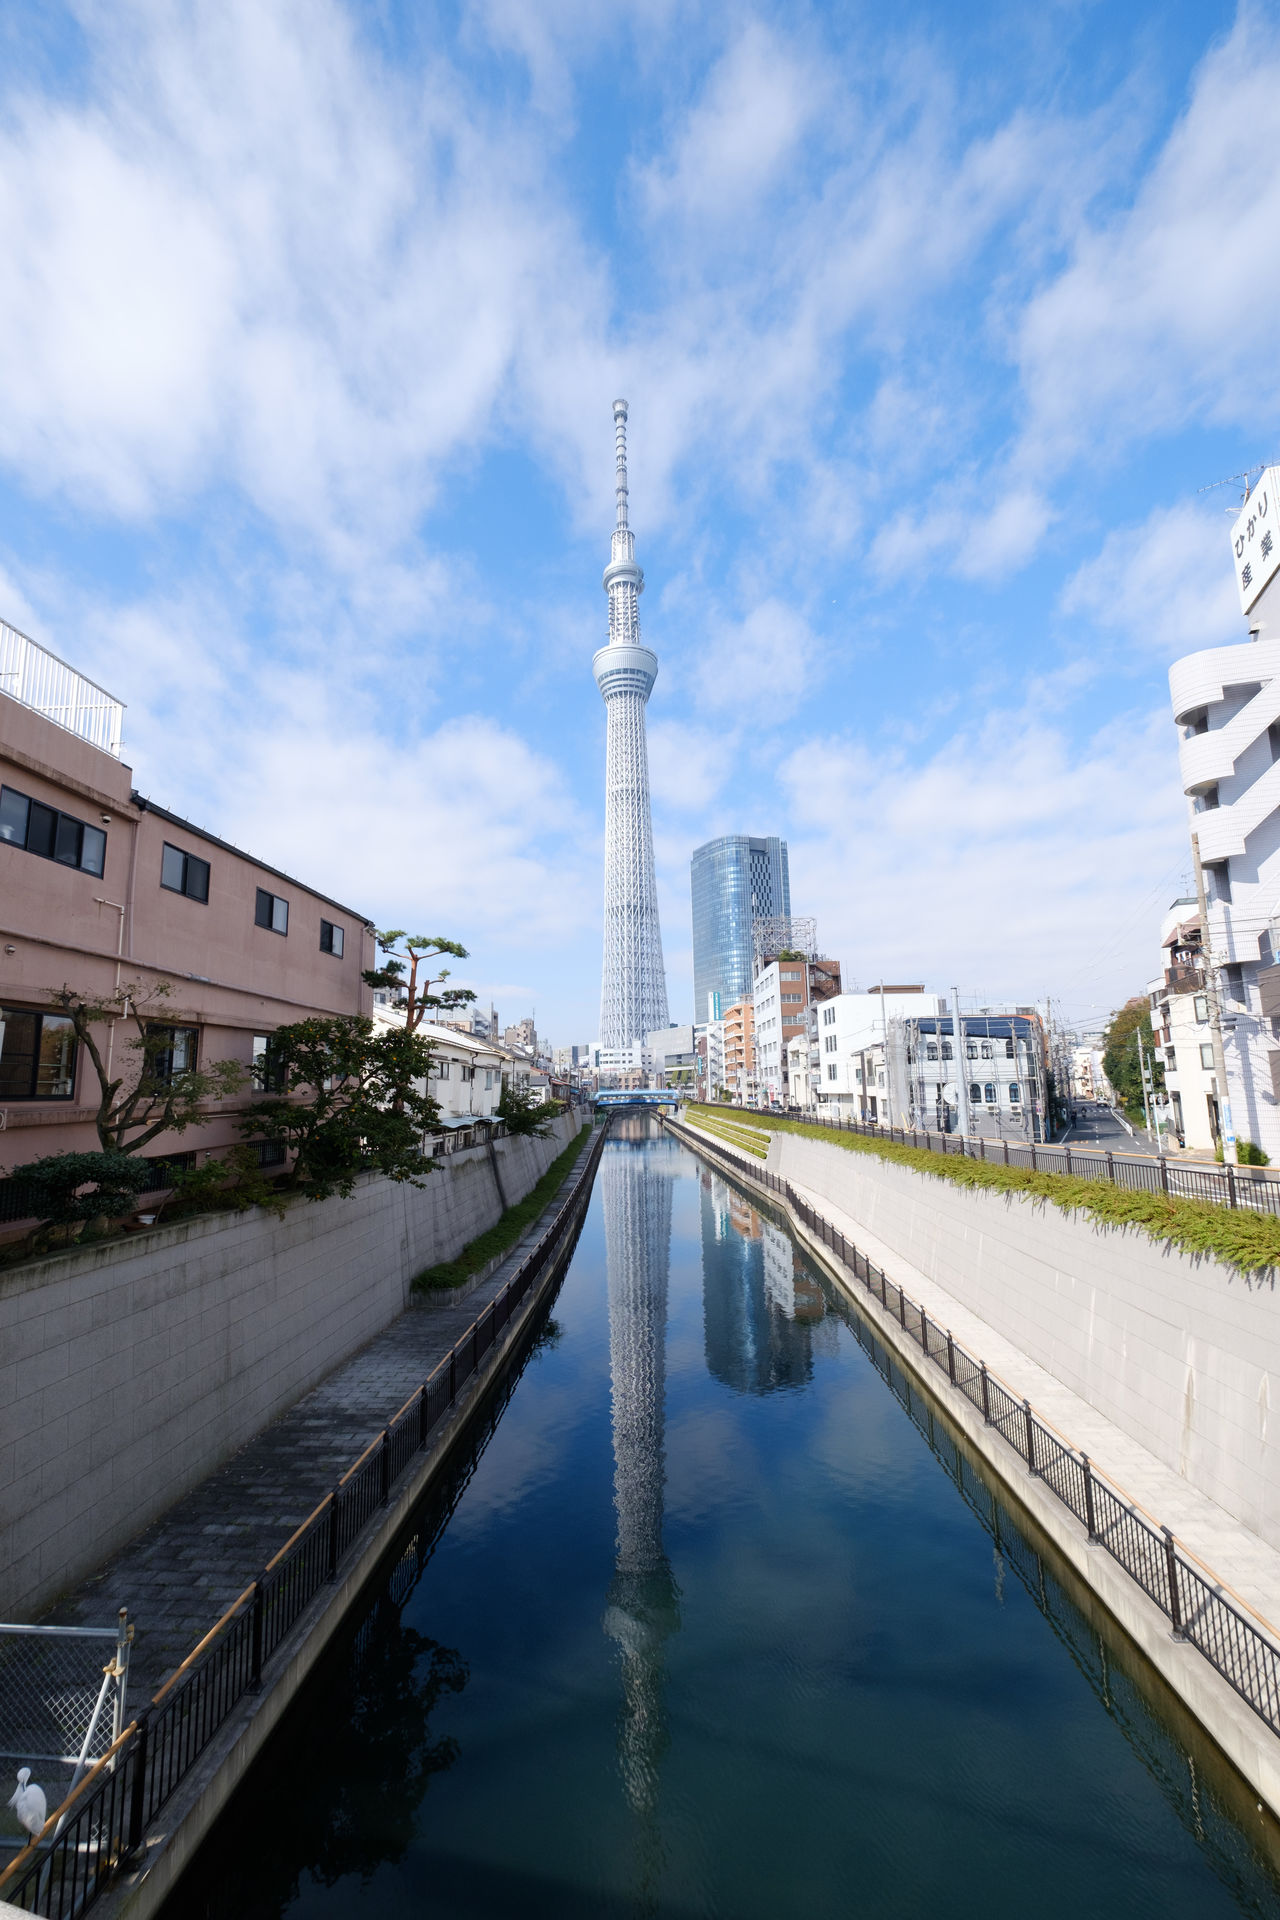 東京スカイツリー/Skytree Day Japan Japan Photography Oshiage Outdoors Sky Skytree Tokyo Tokyo Sky Tree Tower スカイツリー 押上 日本 晴空塔 東京スカイツリー